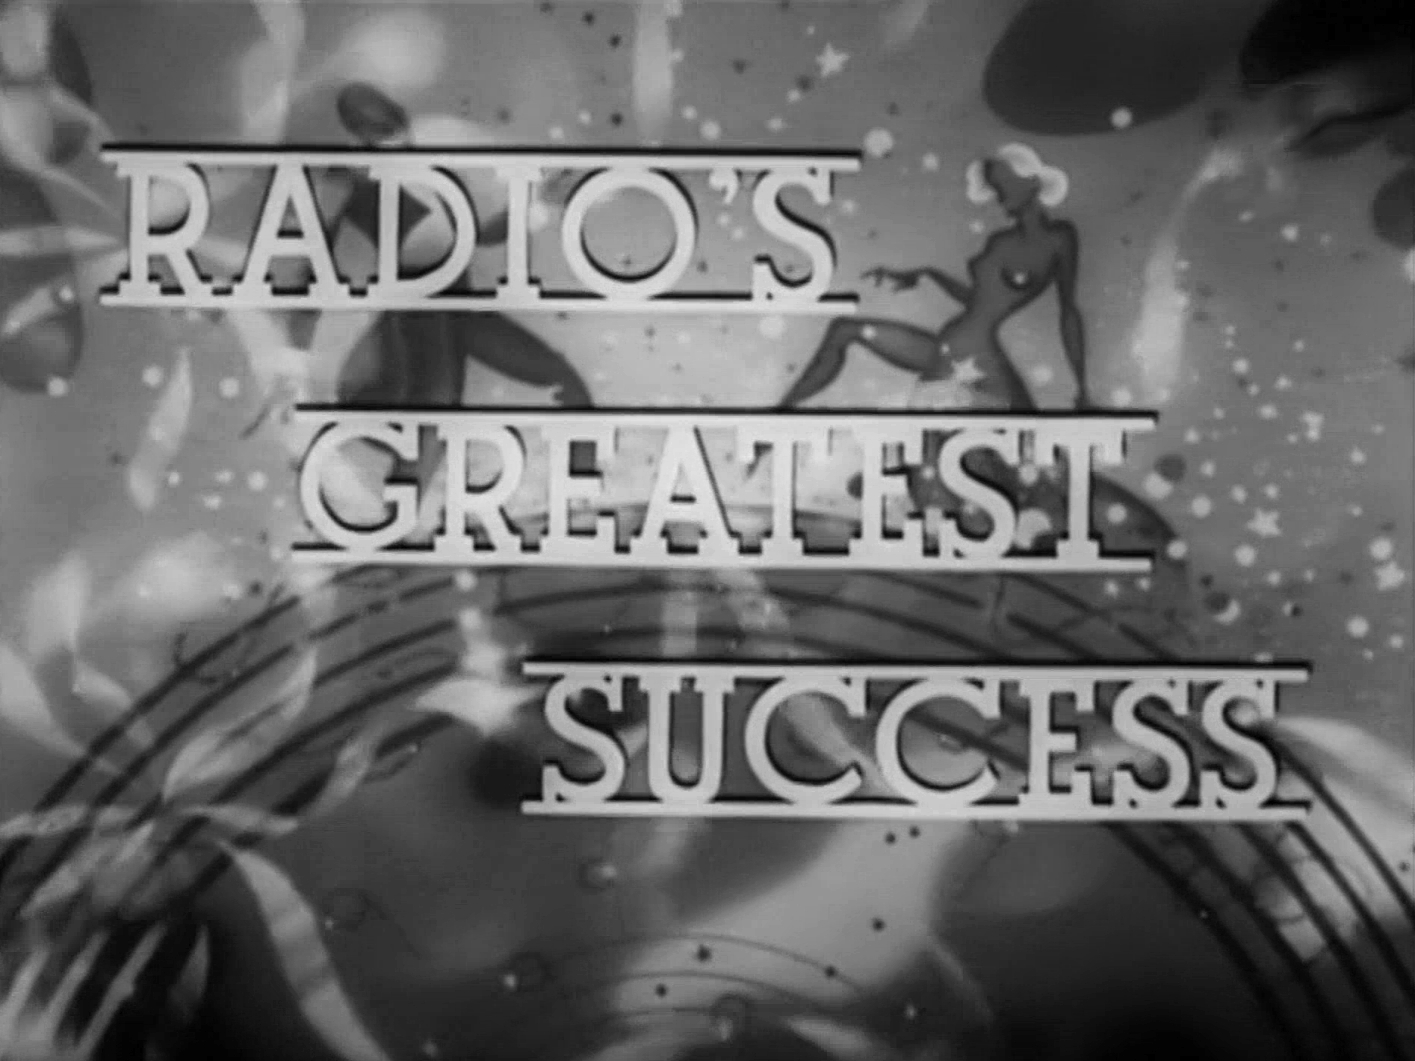 Main title from Band Waggon (1940) (2). Radio's greatest success